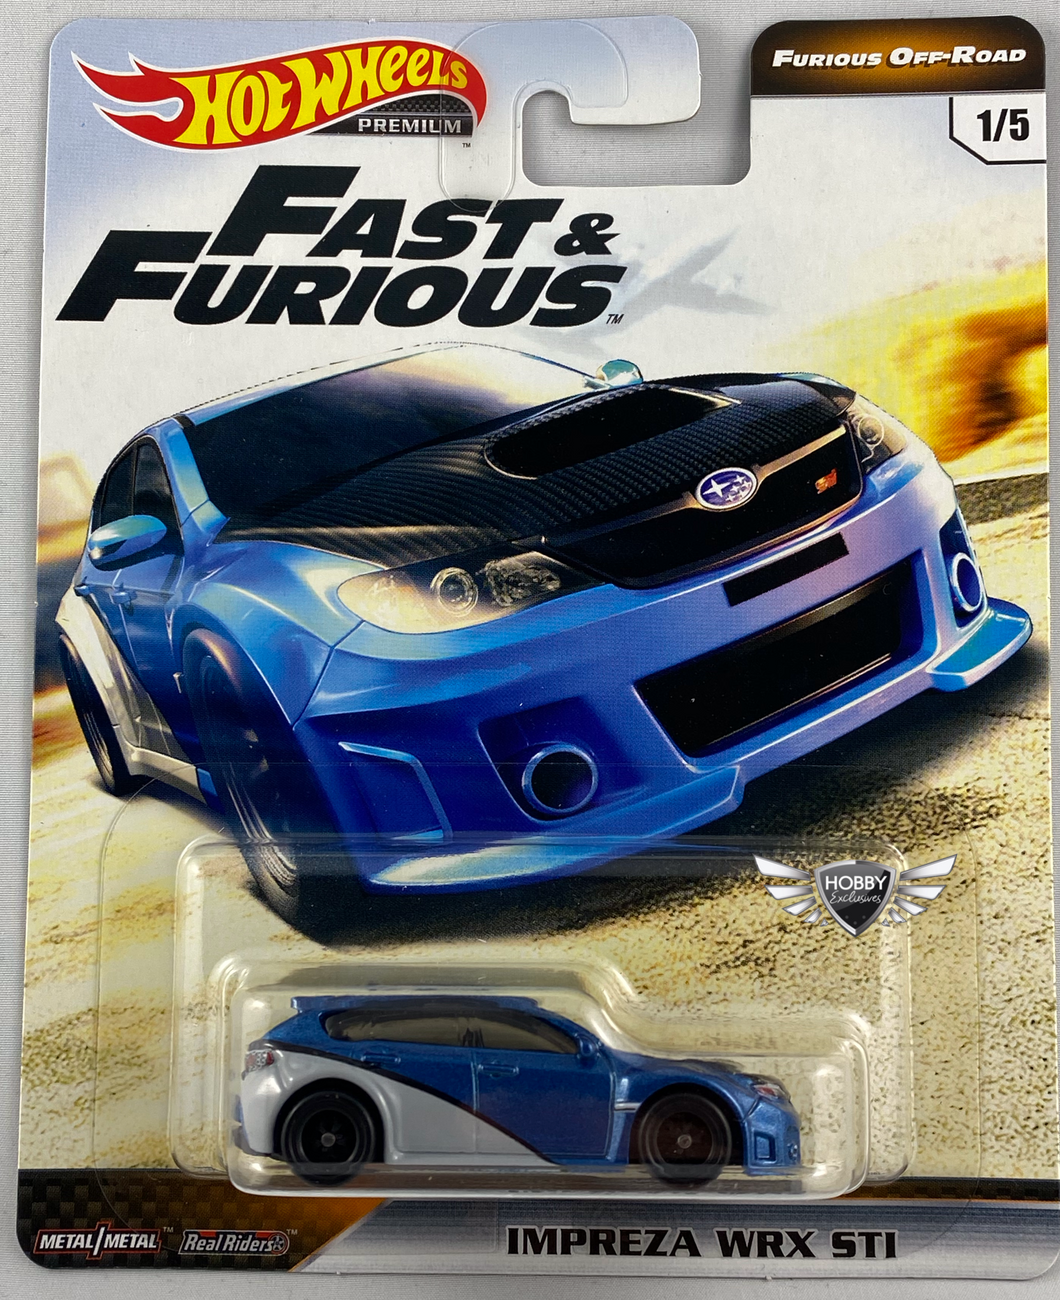 Impreza WRX STI FAST & FURIOUS OFF ROAD Hot Wheels #1